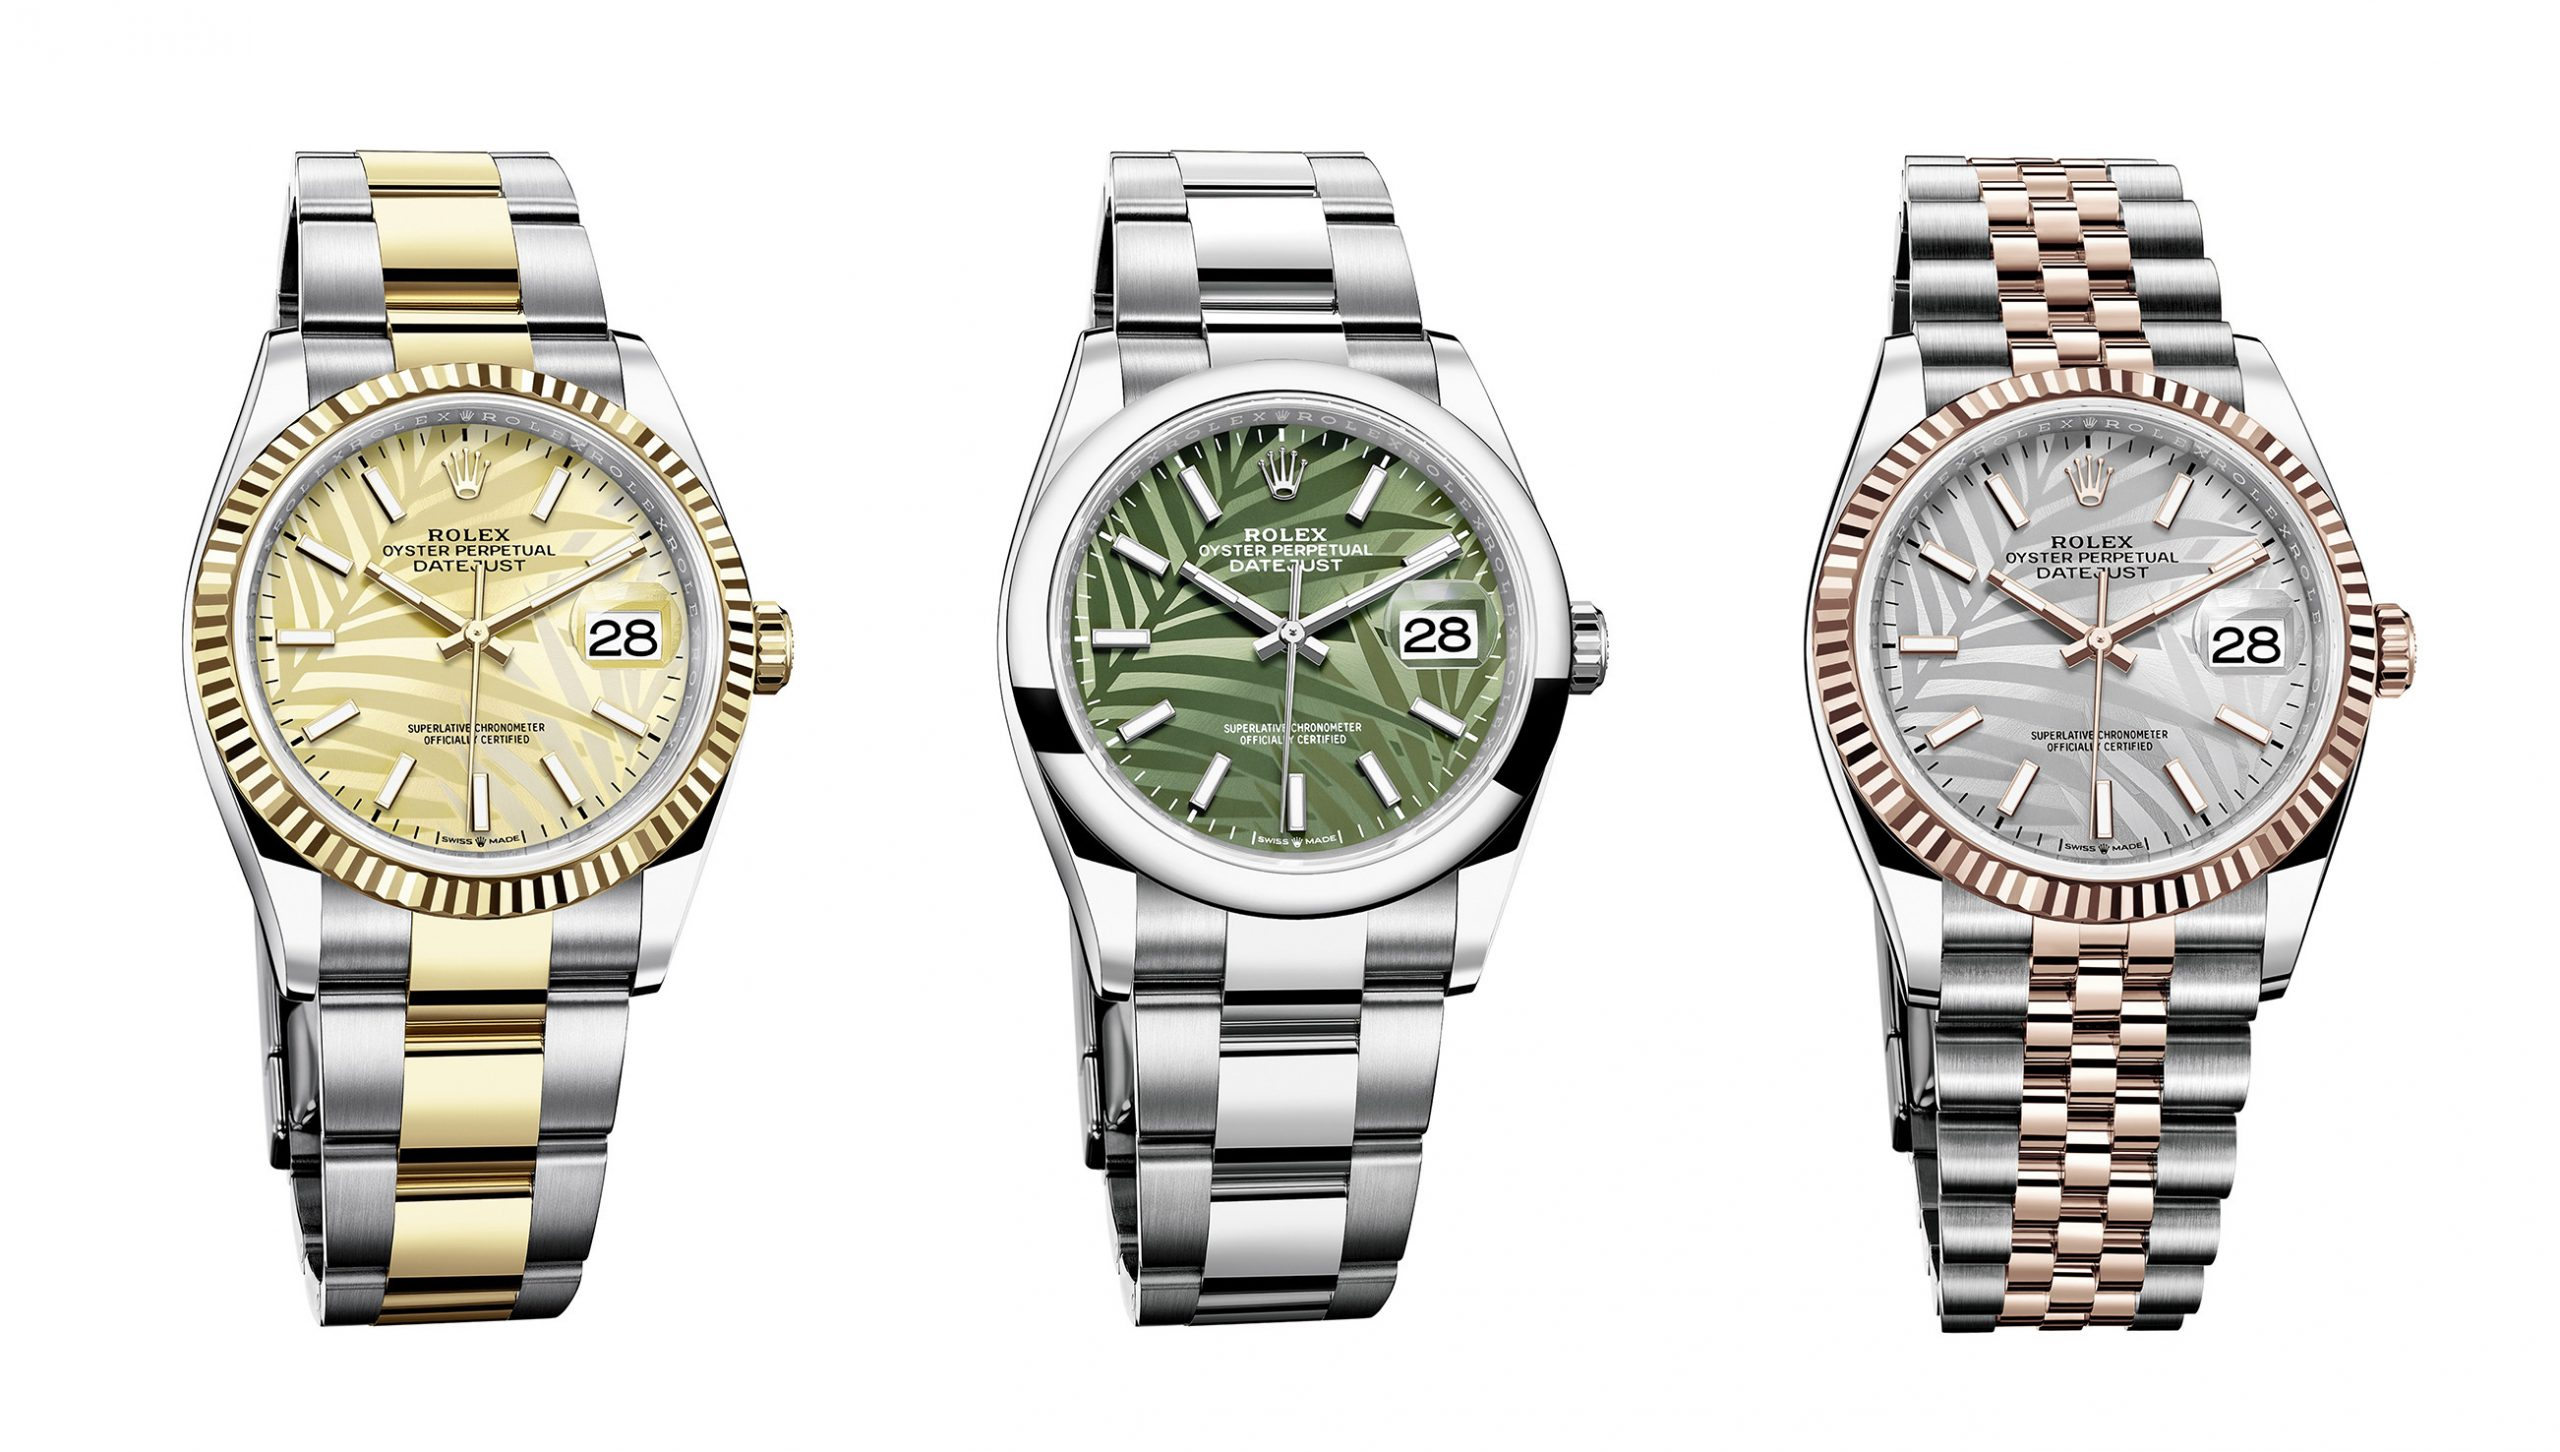 đồng hồ Oyster Perpetual Datejust 36 3